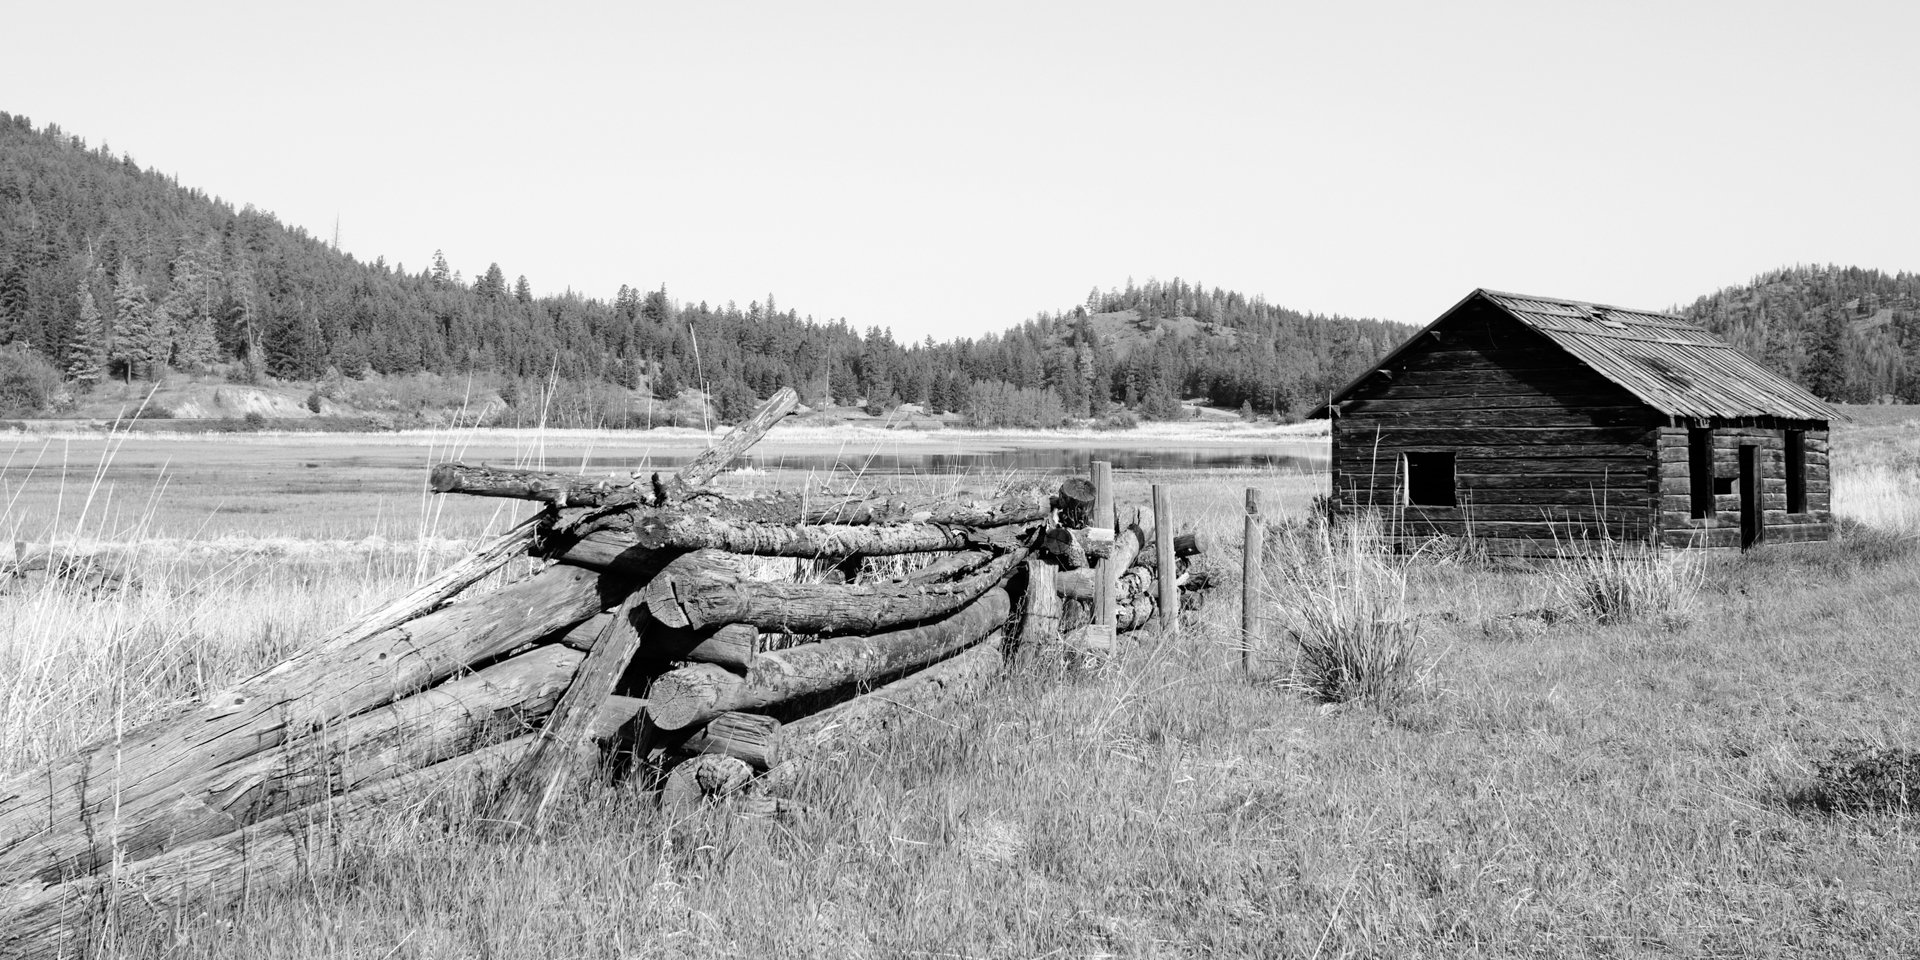 Abandoned Cabin and Corral